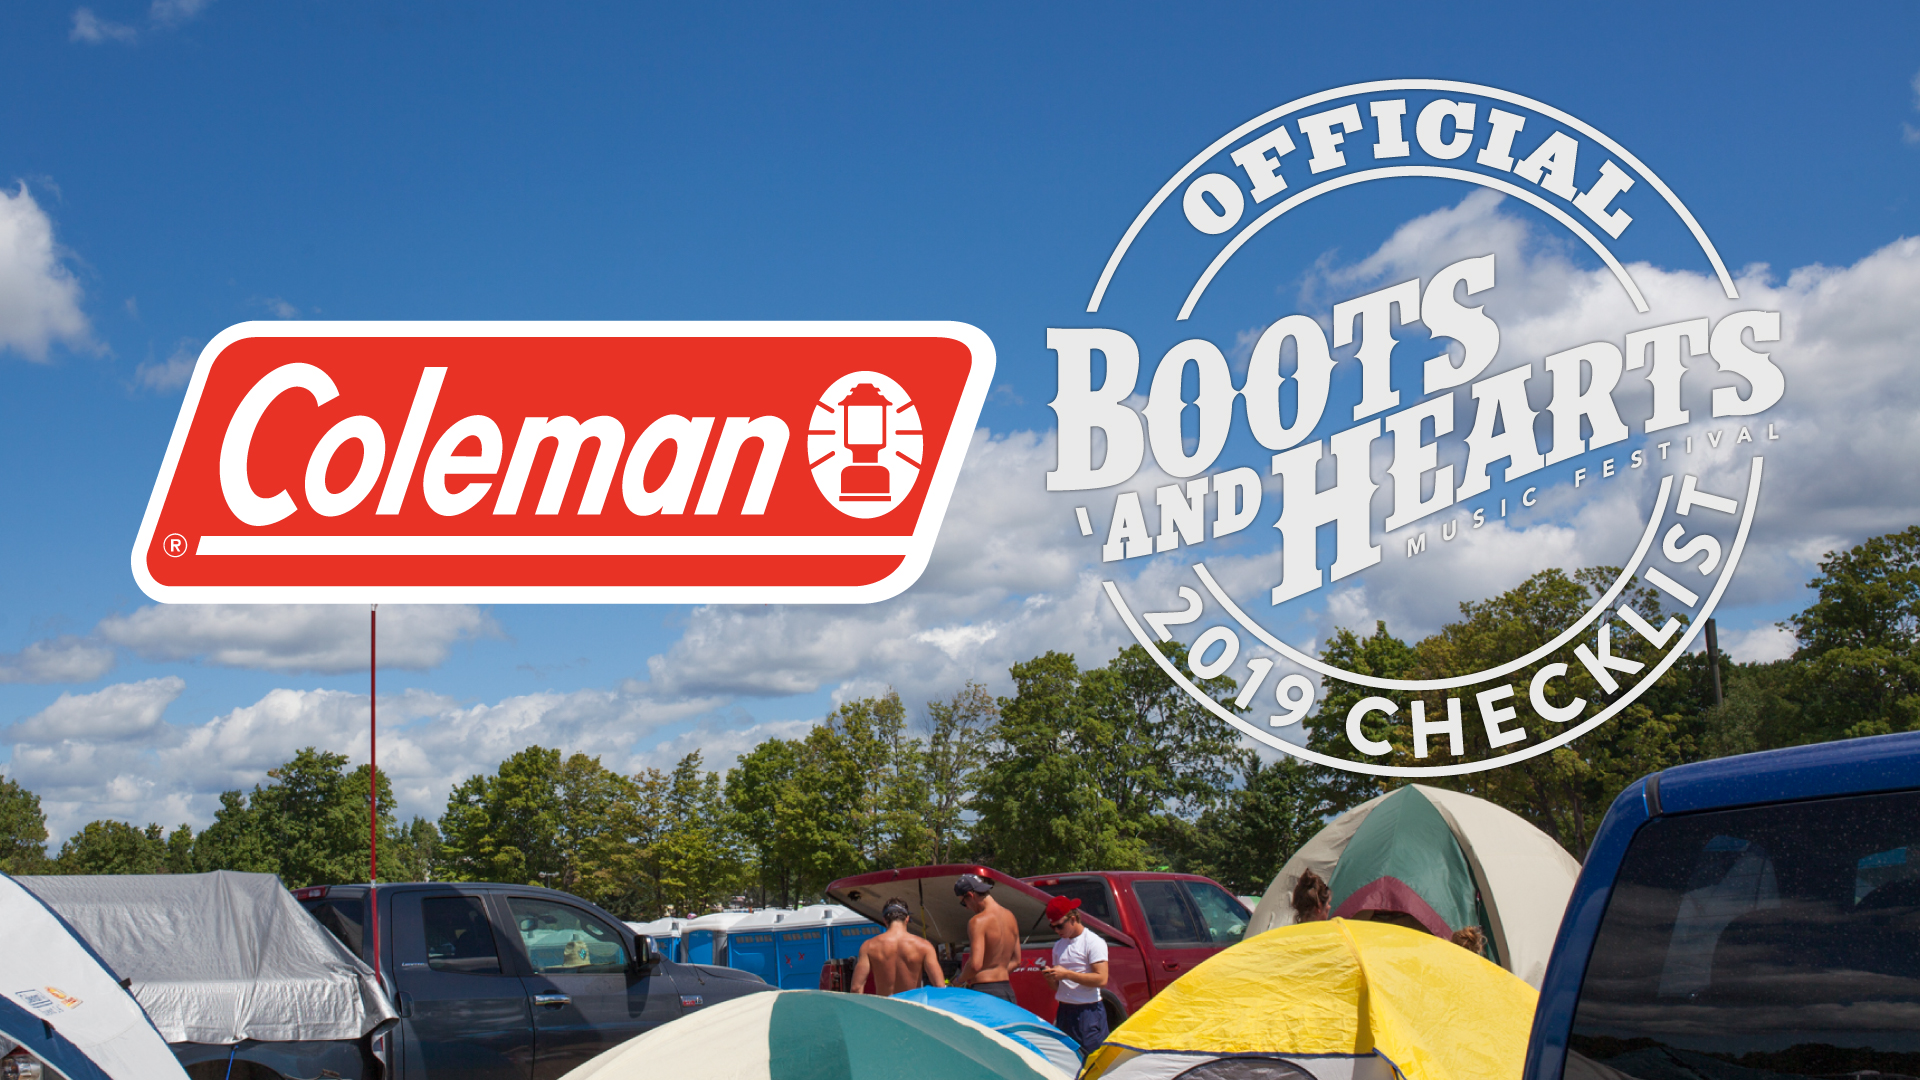 Boots & Hearts Ultimate Packing List By Coleman